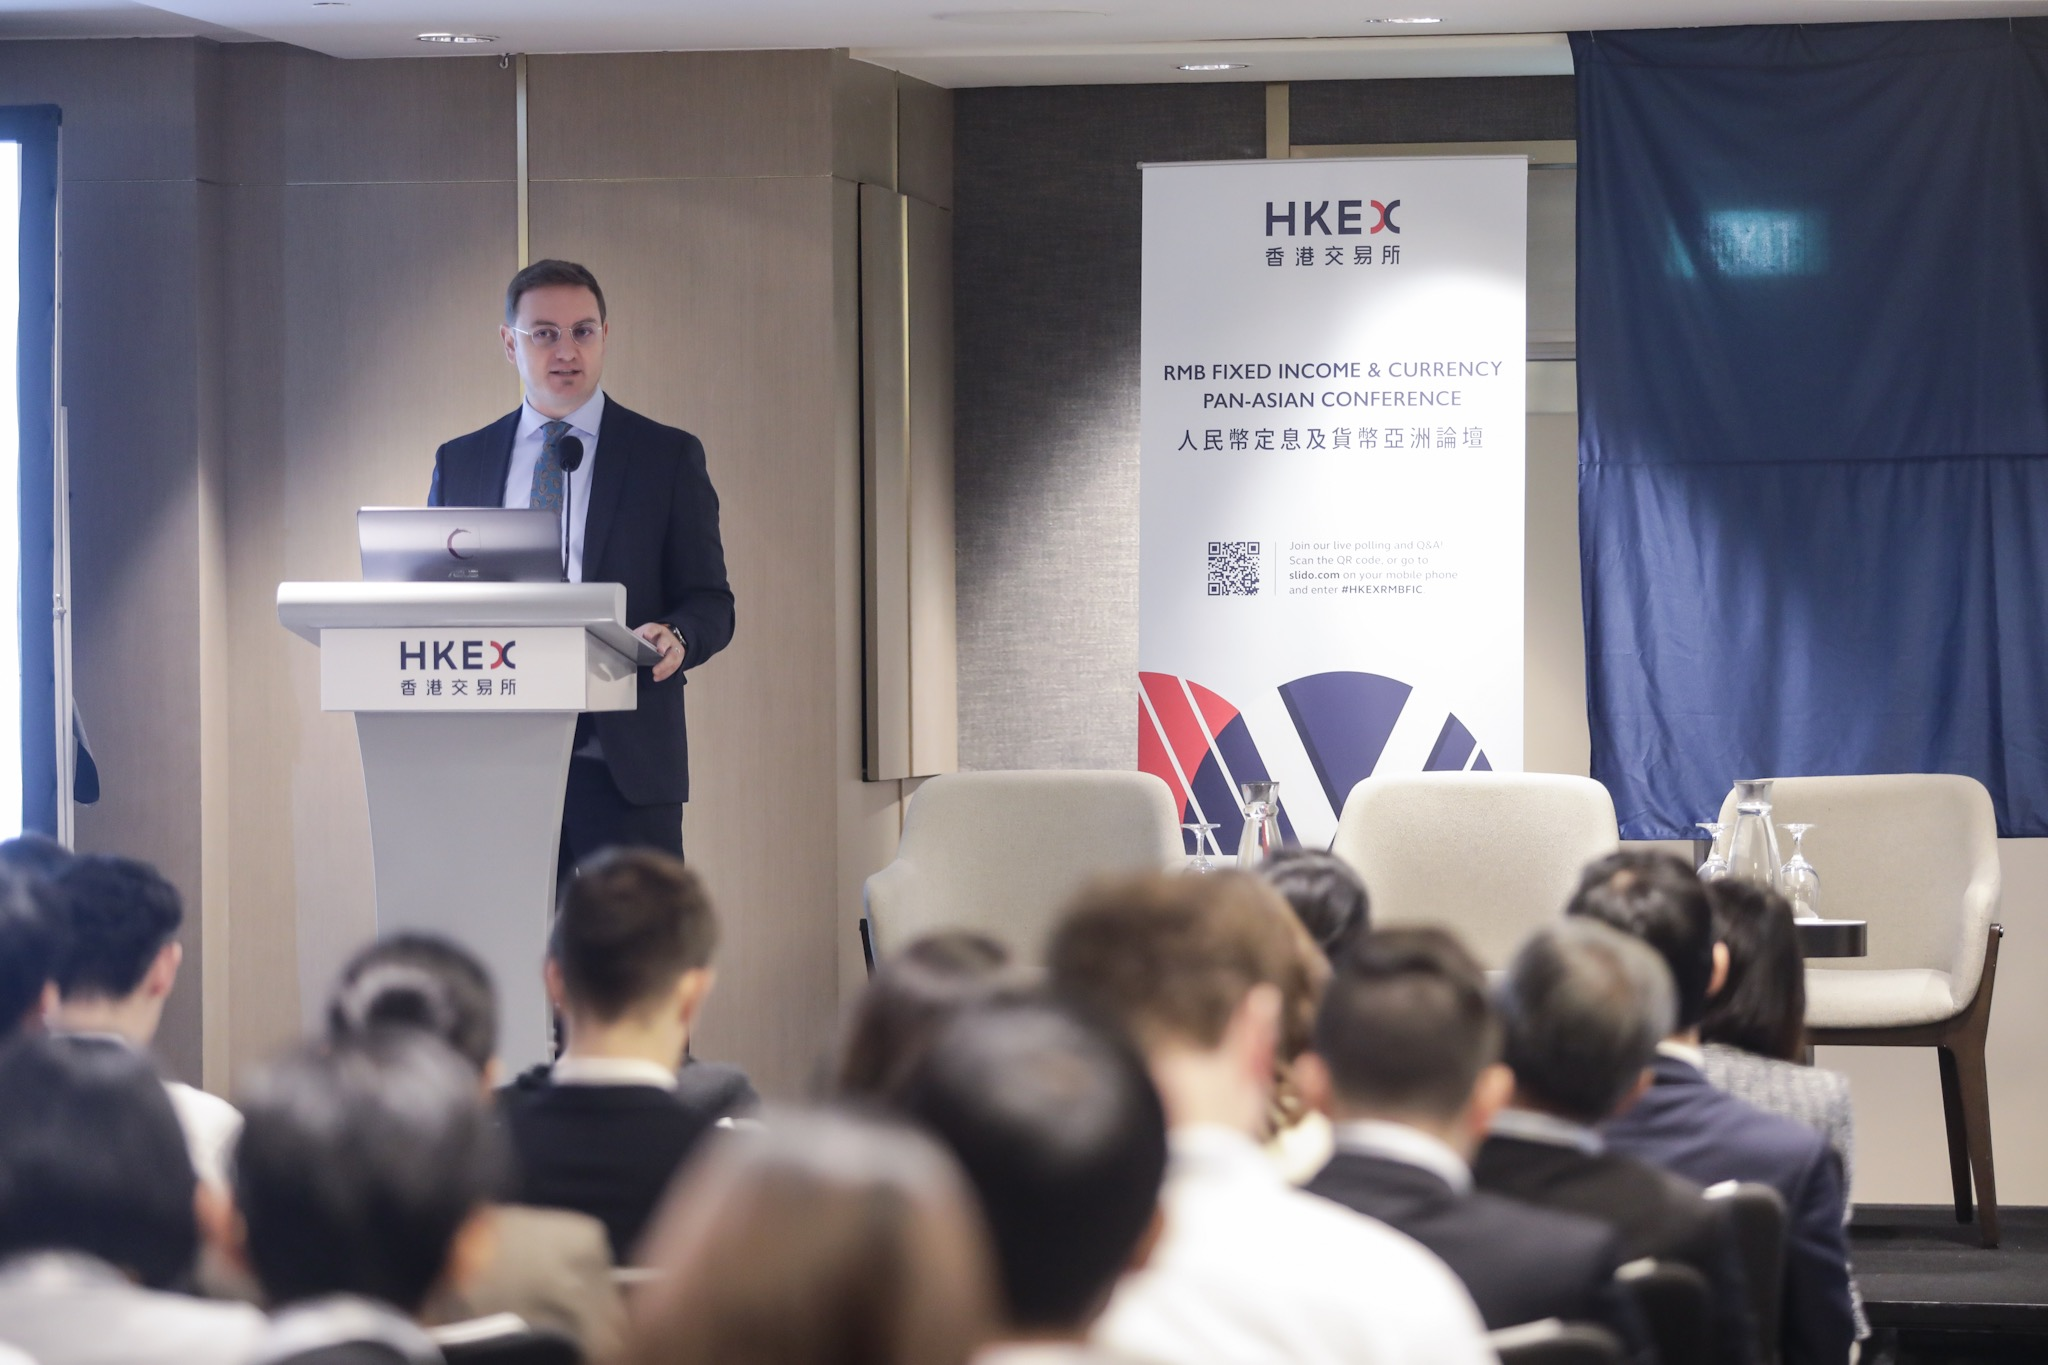 Julien Martin, Head of Fixed Income & Currency Product Development at HKEX, speaks at the Singapore Conference